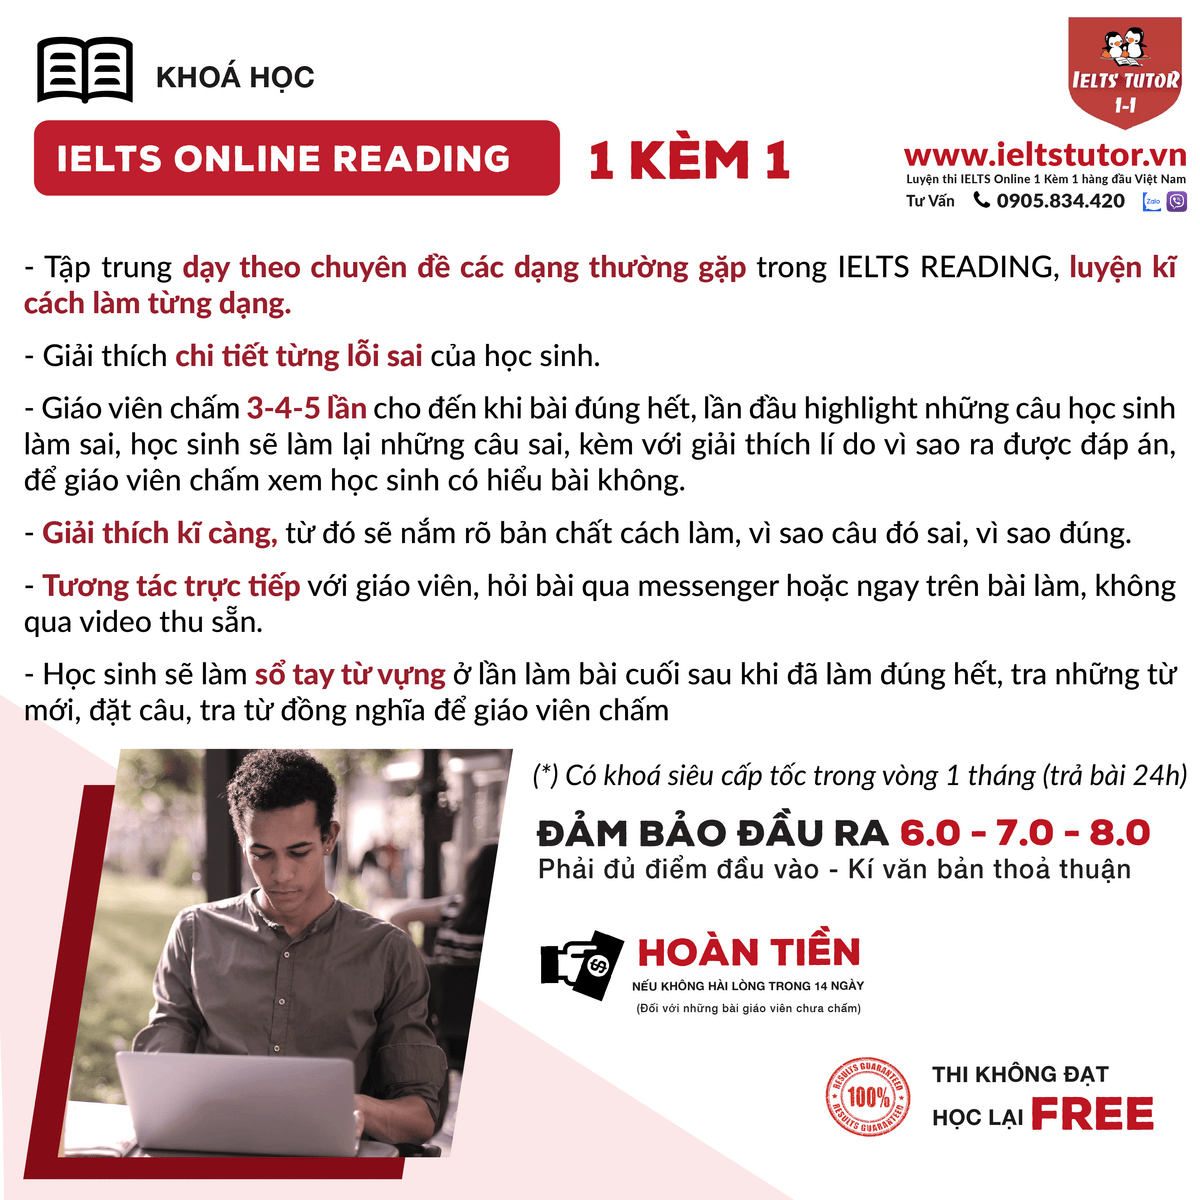 IELTS READING ONLINE 1 KÈM 1